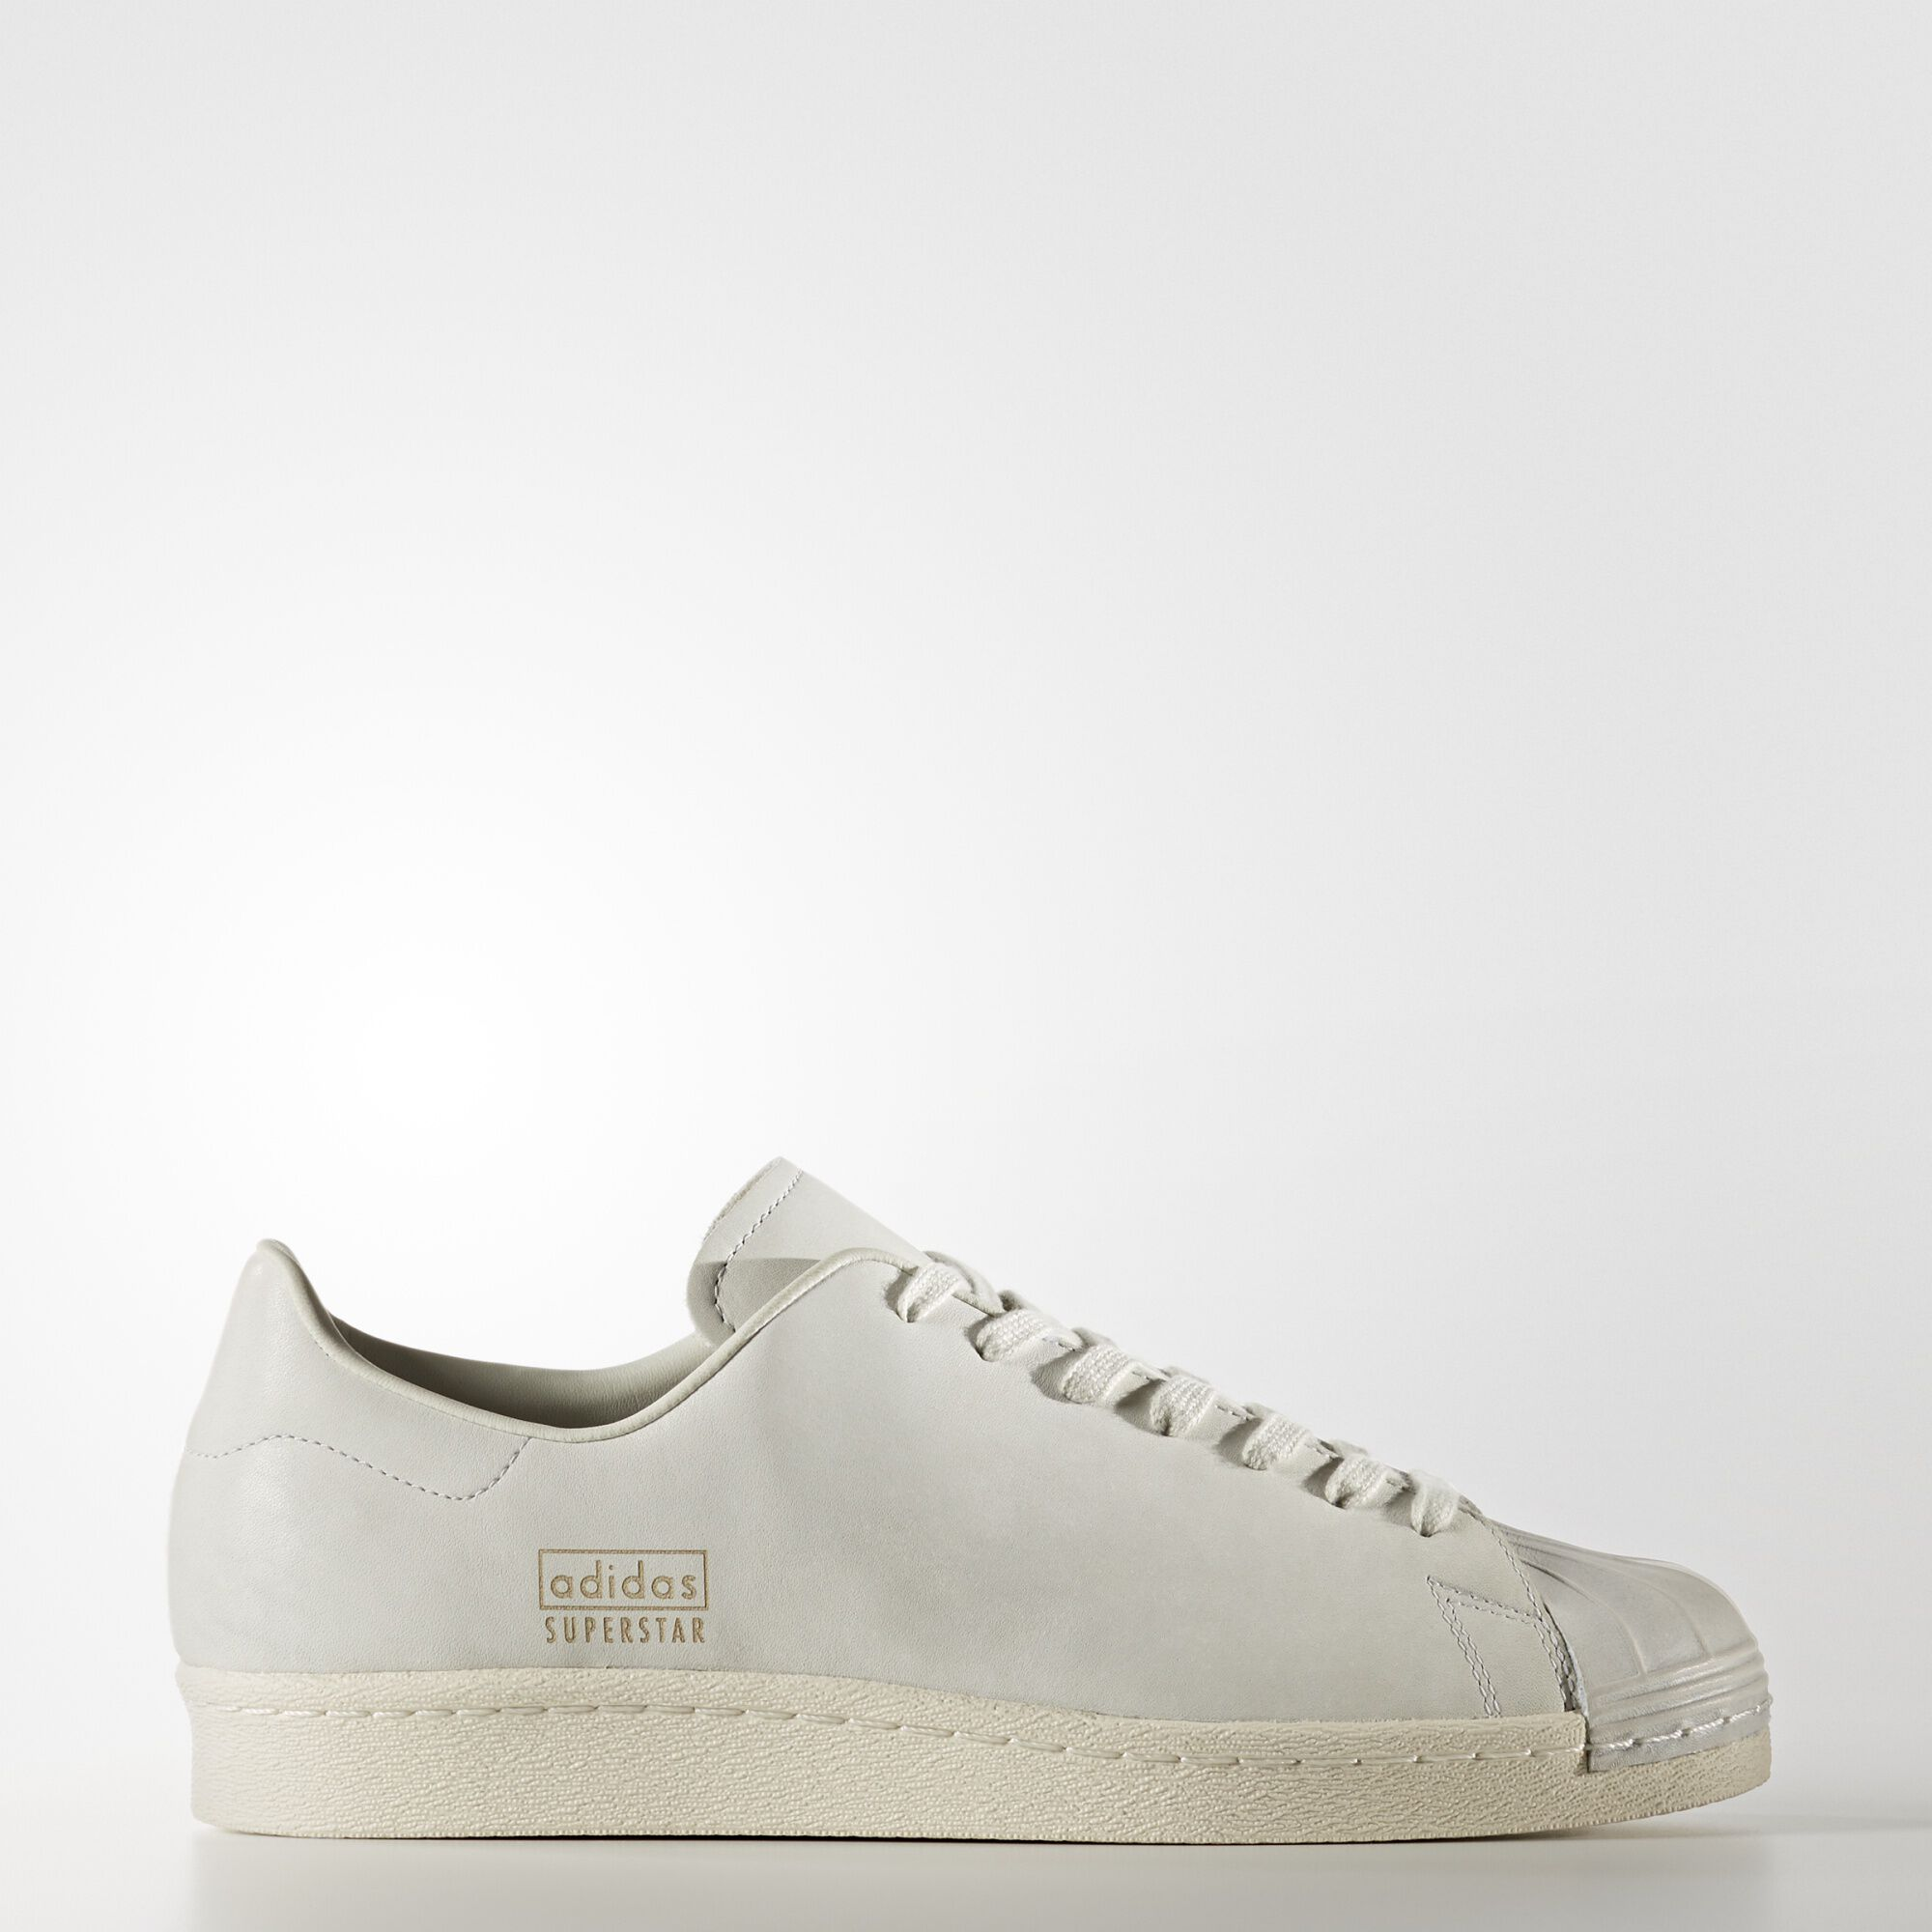 Cheap Adidas Superstar 80s Men Cheap Adidas mens high tops all white top ten